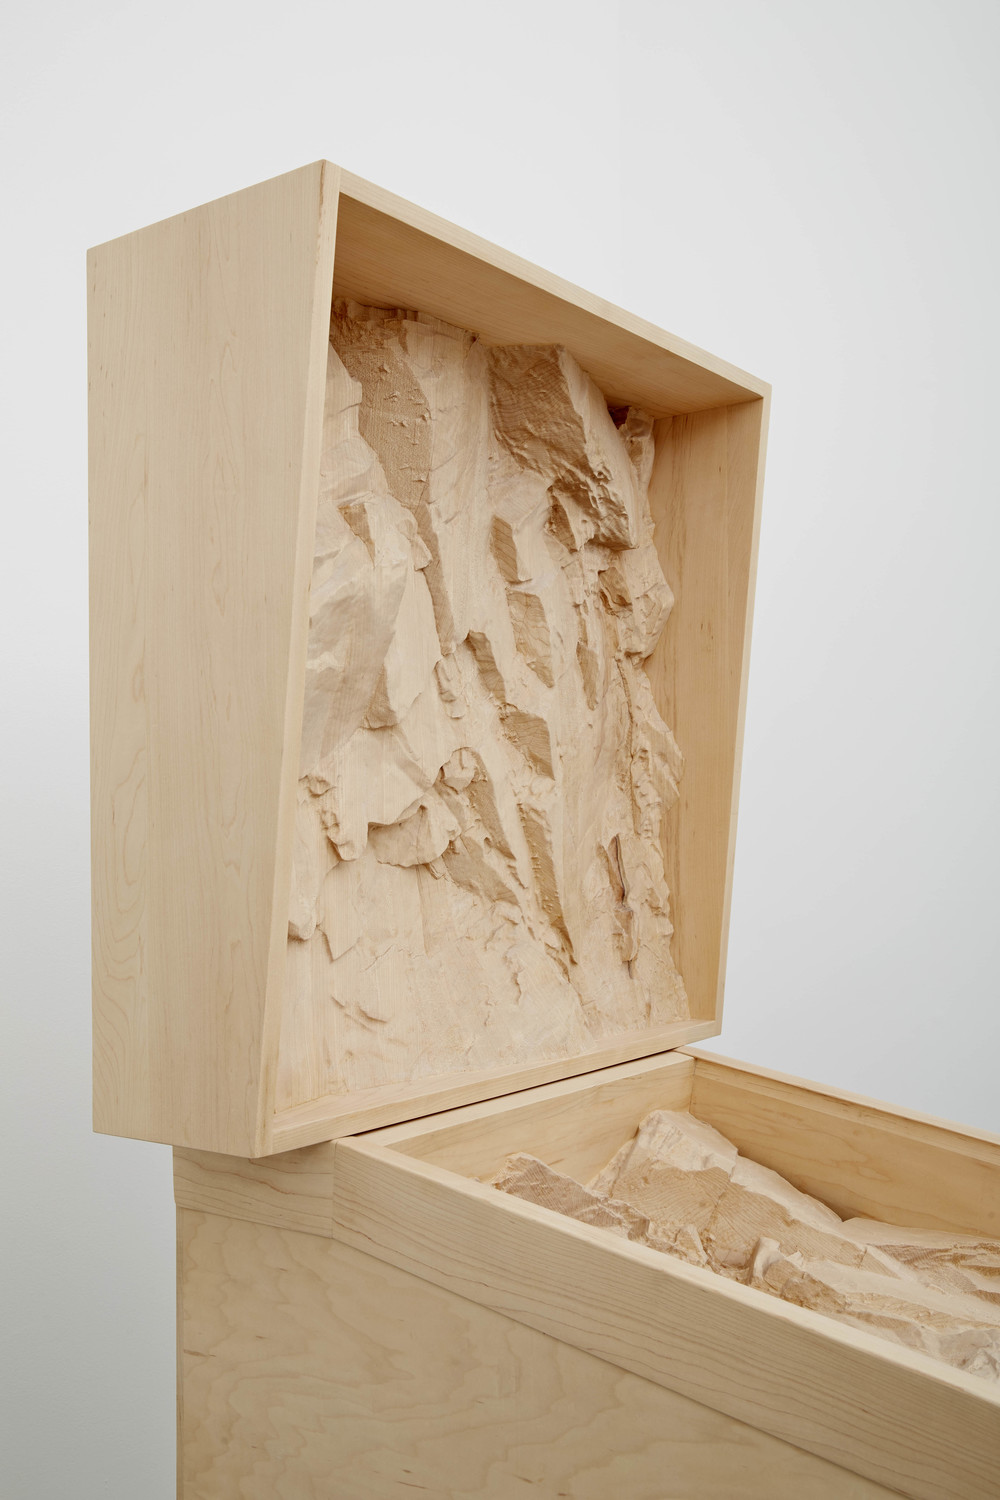 Intrusion, 2014, Maple wood, 72 3/4 x 28 x 58 inches, Photos: Jason Wyche